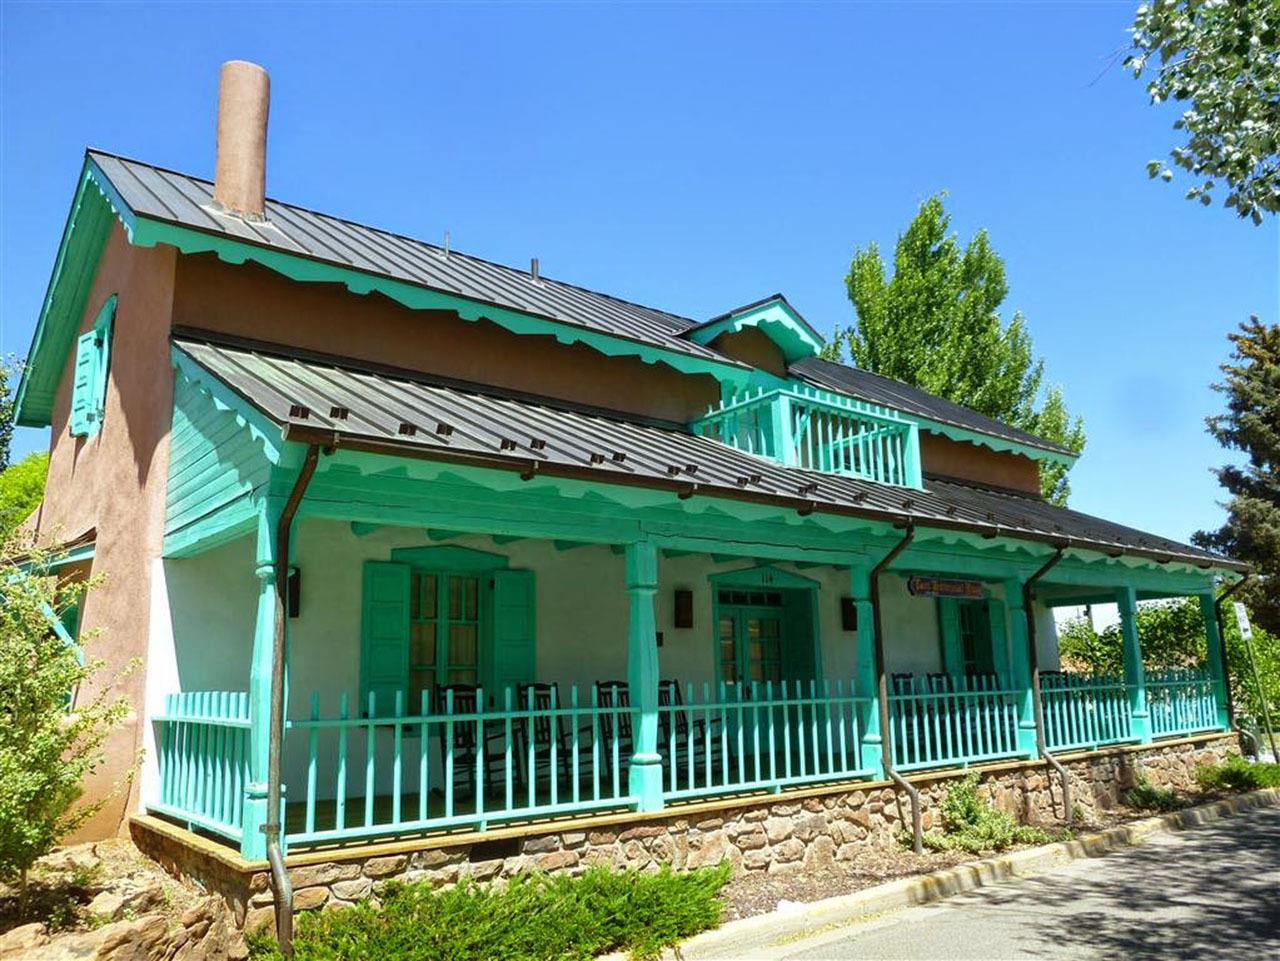 #Taos neighborhoods #Town of Taos territorial house #Taos #New Mexico